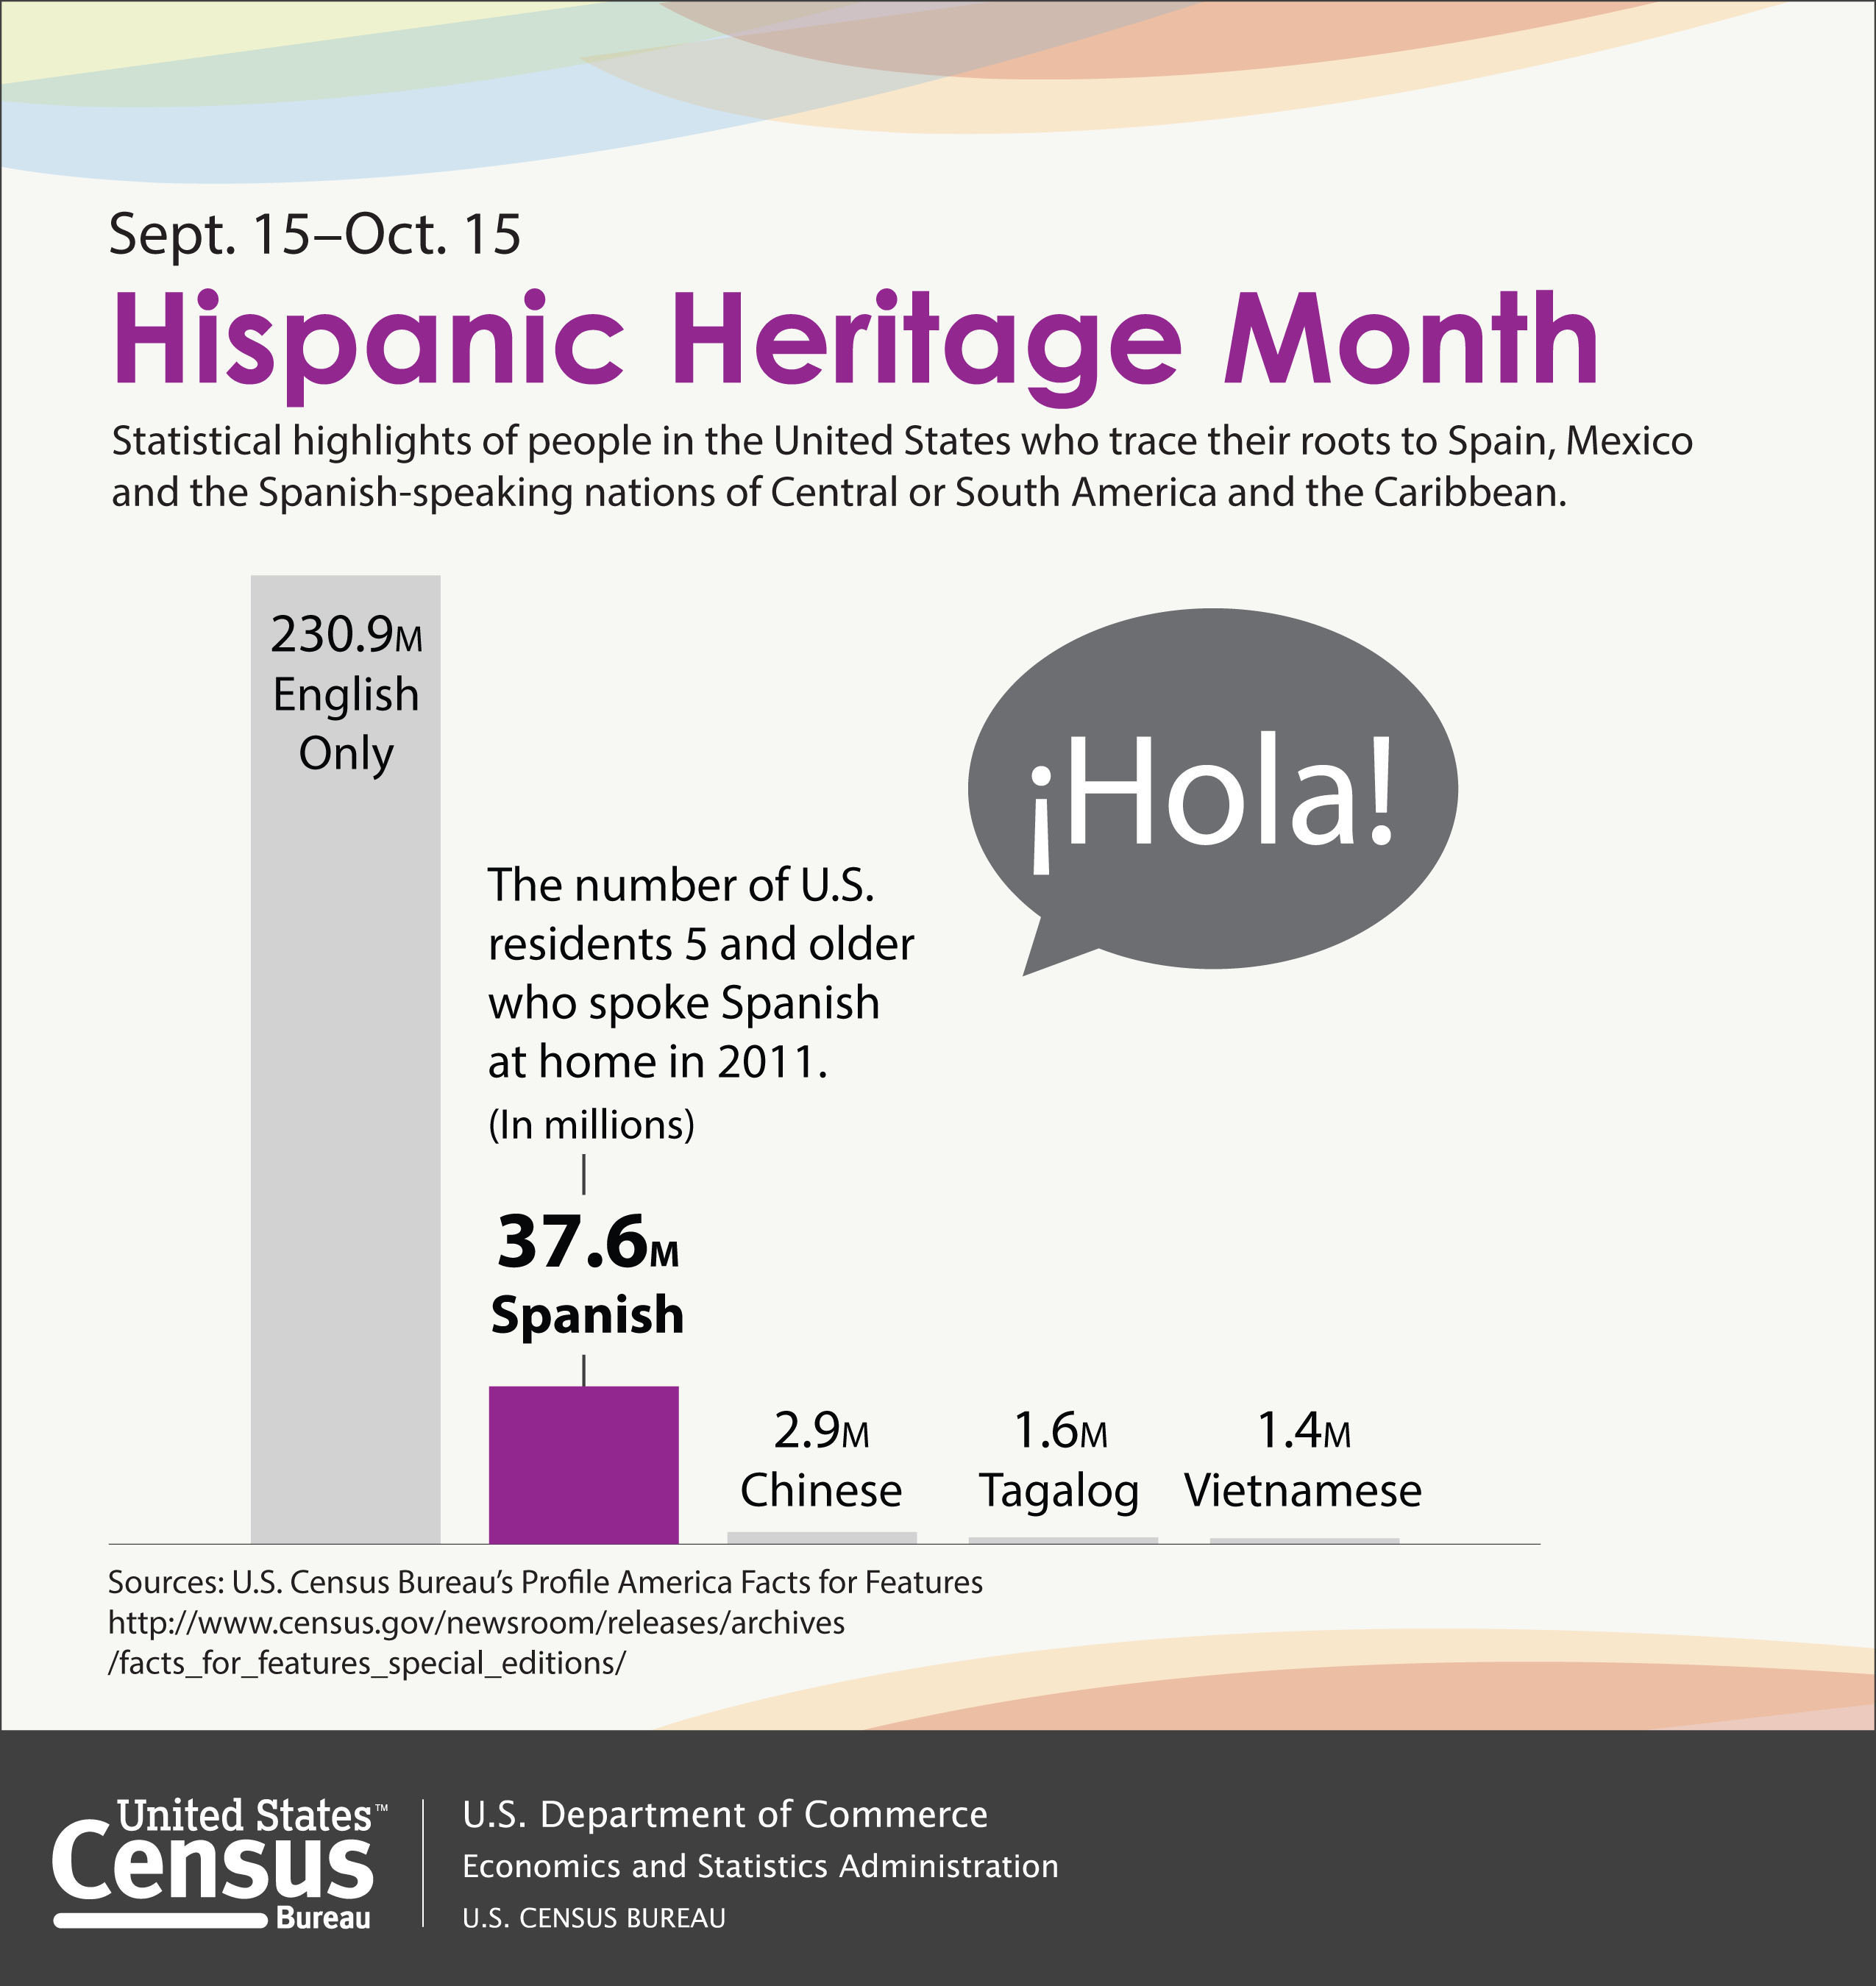 "The number of U.S. residents 5 and older who spoke Spanish at home was 37.6 million in 2011. This is a 117 percent increase since 1990 when it was 17.3 million. Those who hablan espanol en casa constituted 12.9 percent of U.S. residents 5 and older. More than half of these Spanish speakers spoke English ""very well."" More: http://www.census.gov/newsroom/releases/archives/facts_for_features_special_editions/cb13-ff19.html.  (PRNewsFoto/U.S. Census Bureau)"